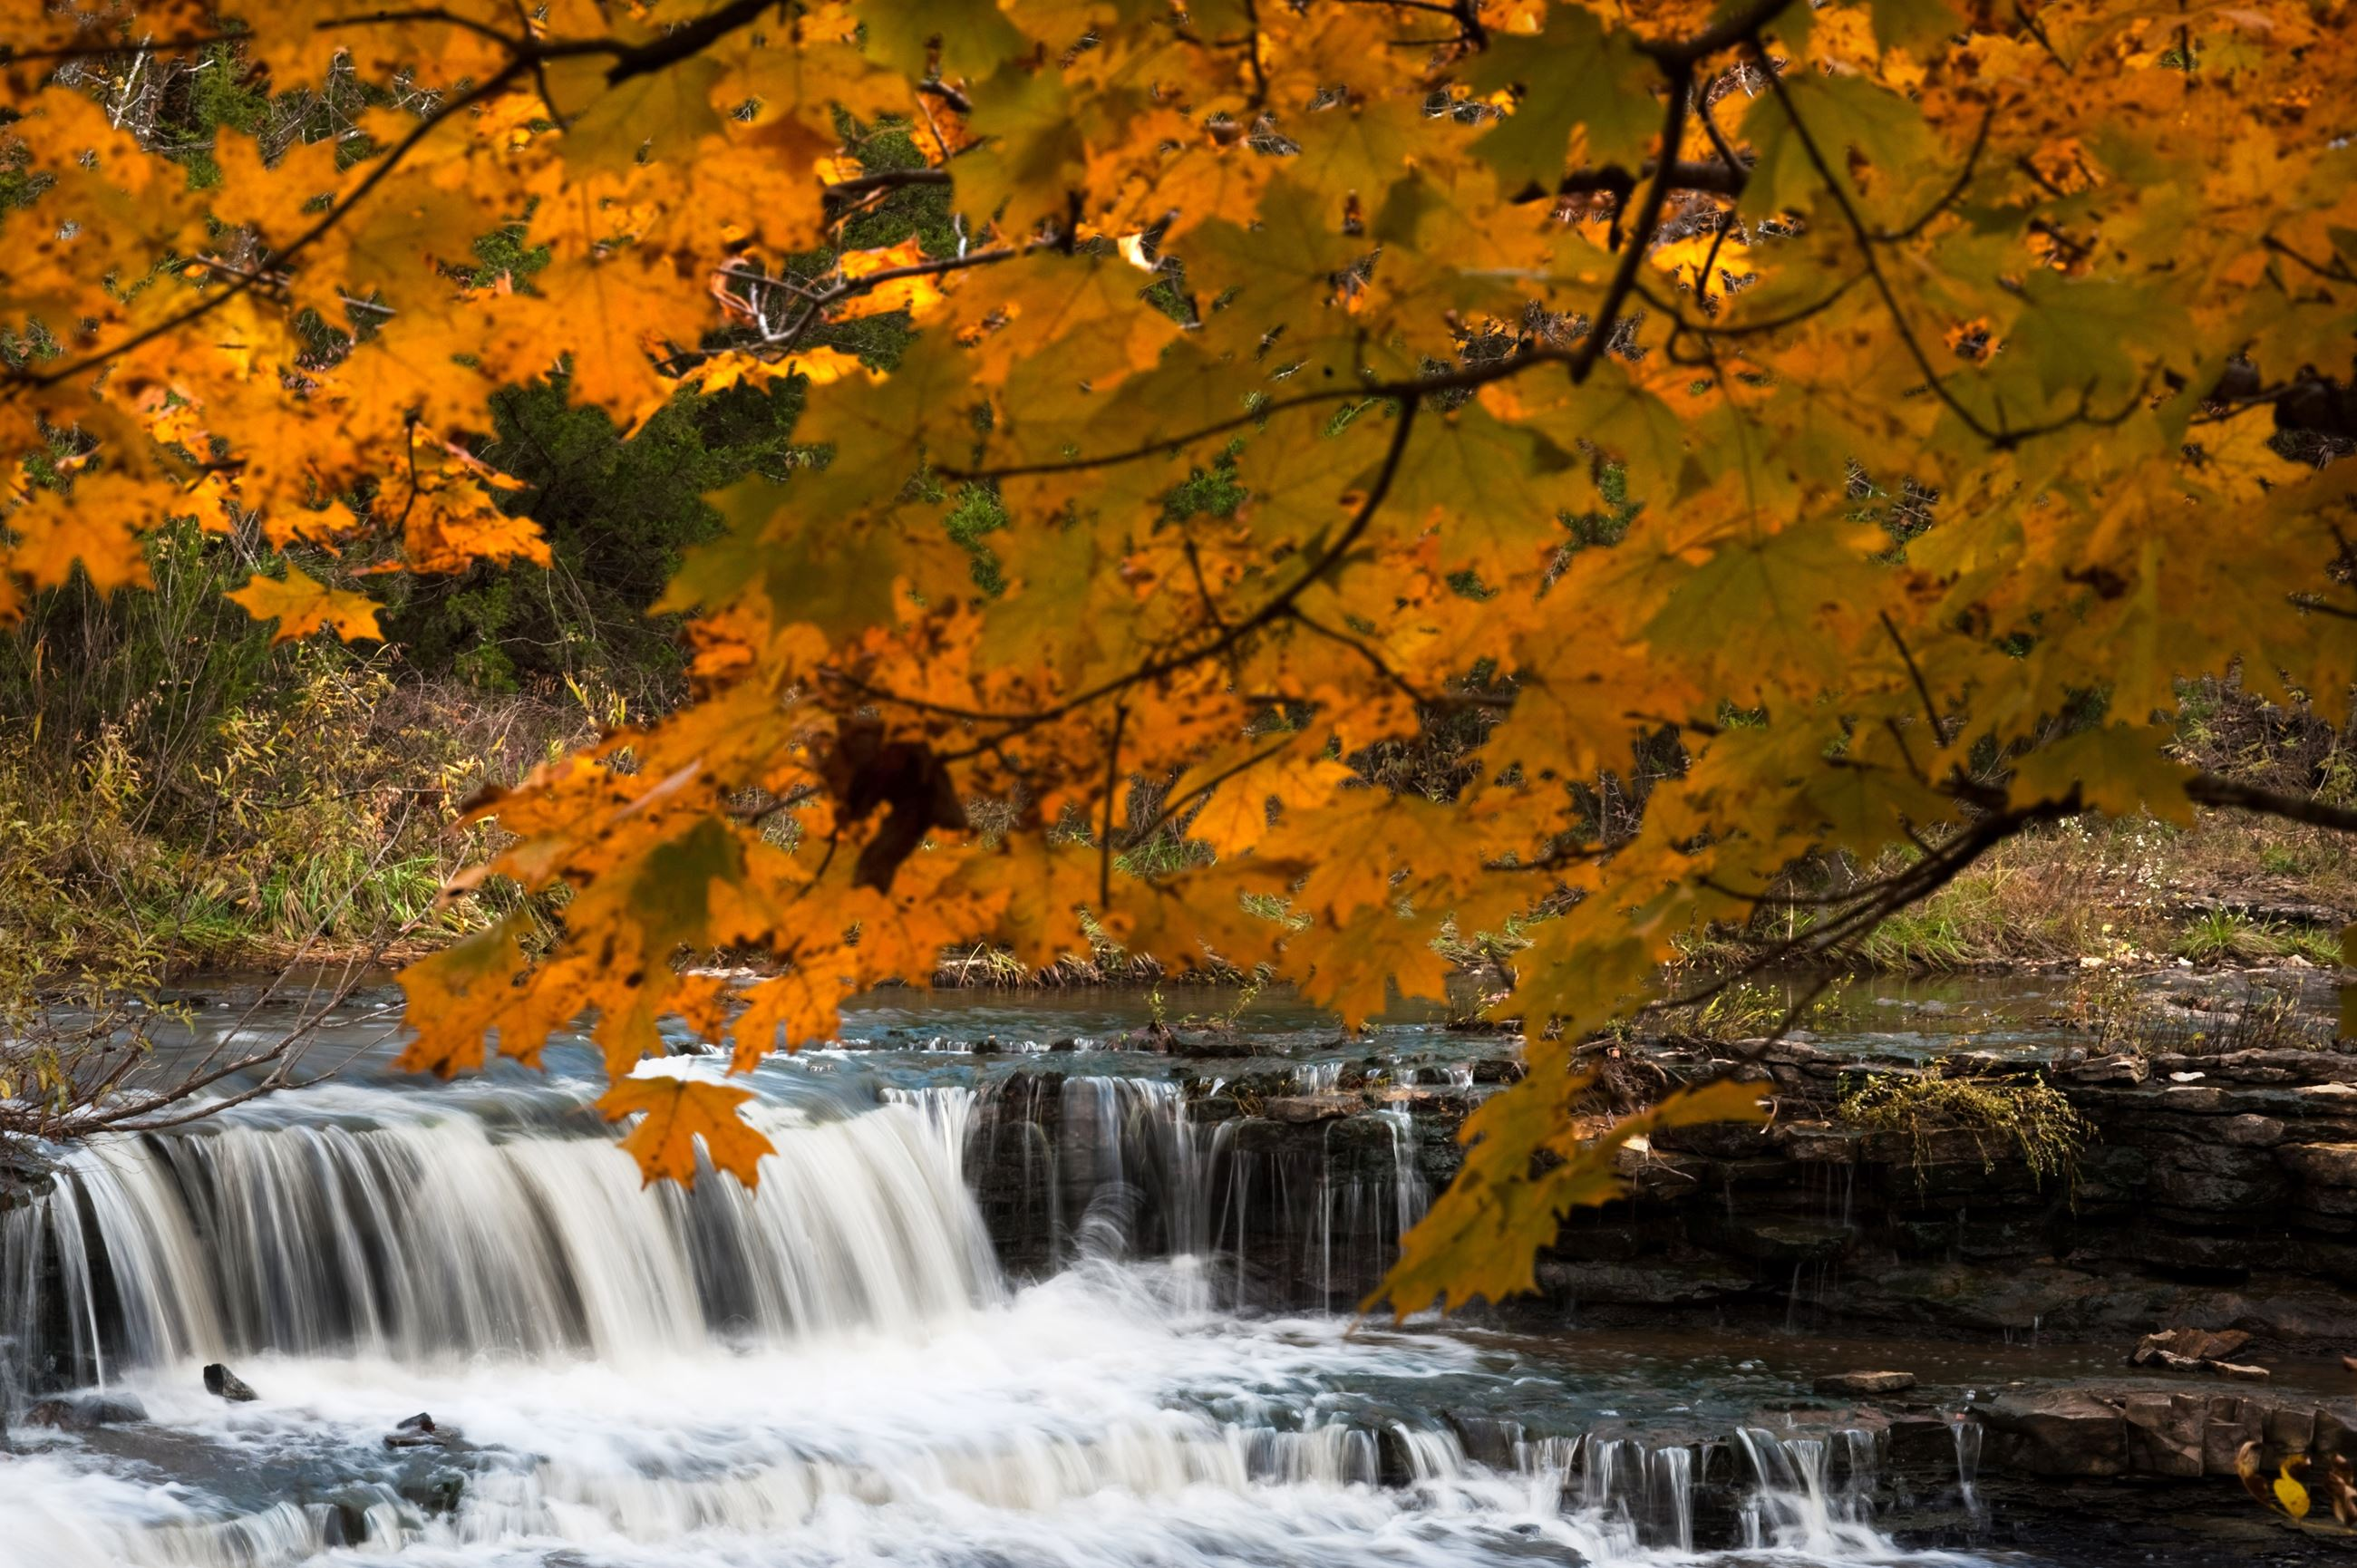 Rock Creek Waterfall and Yellow Leaves